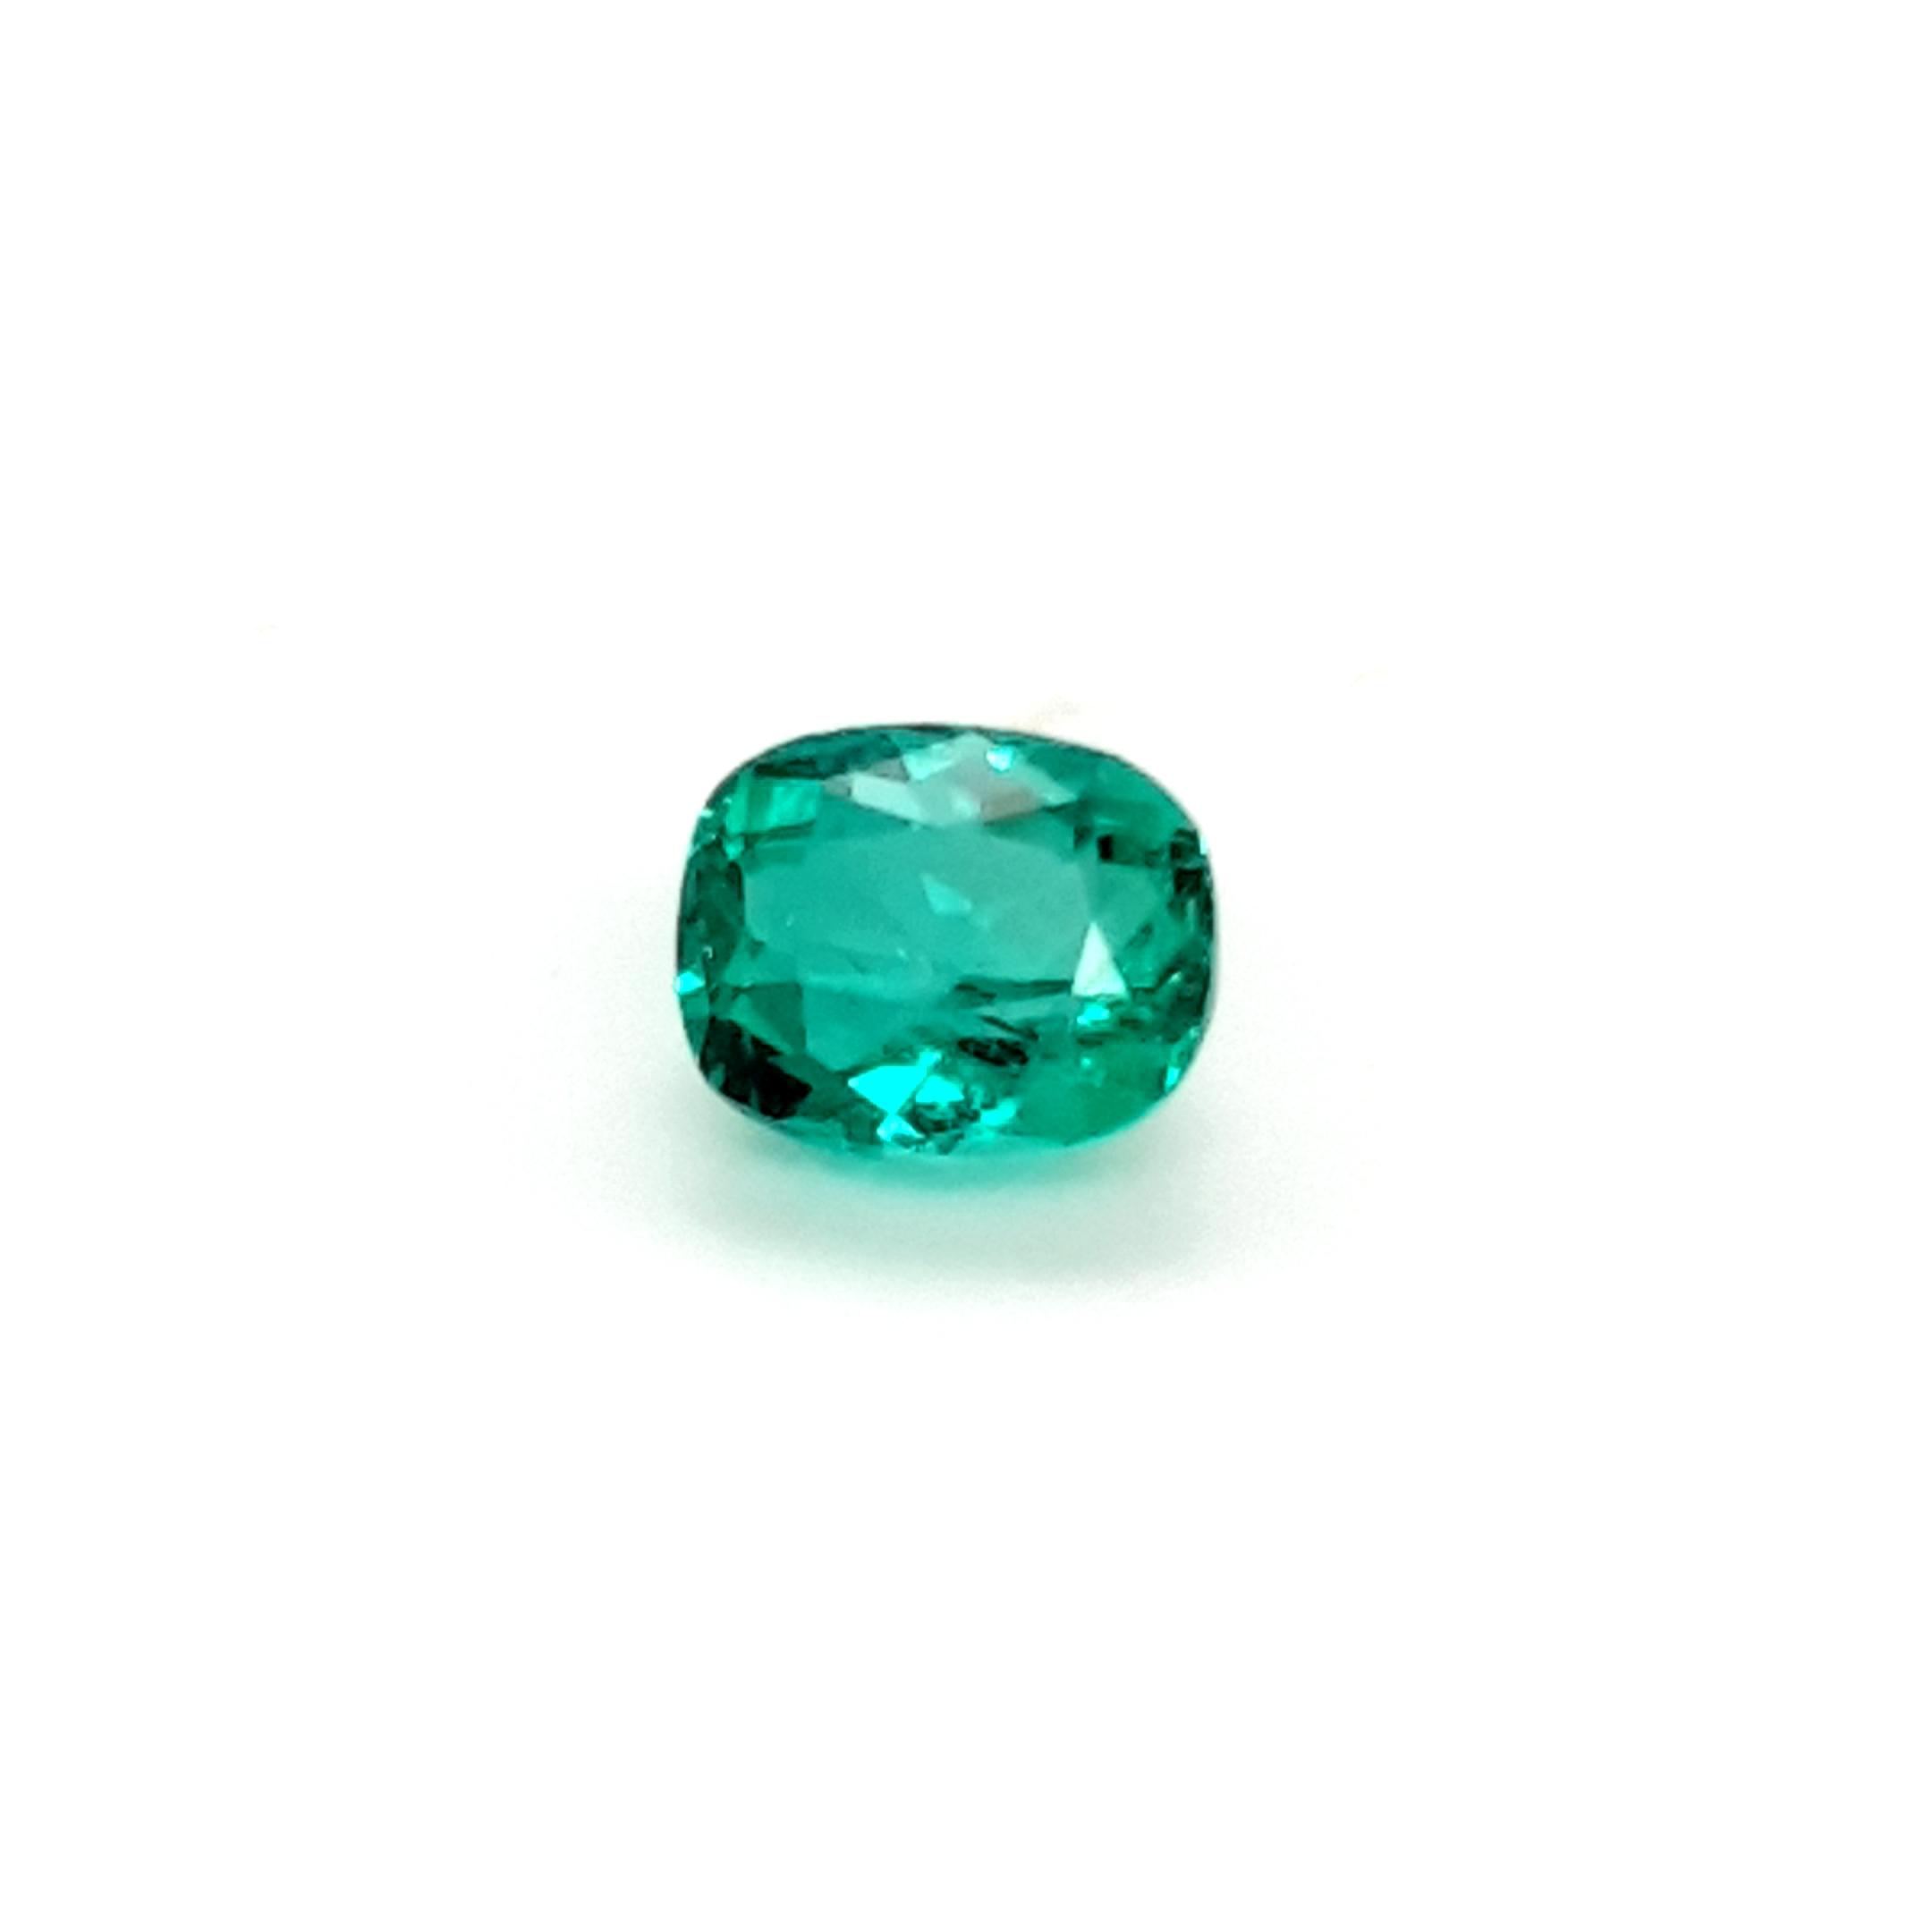 1,71ct. Emerald from Colombia cert. EMI20C13 ClaudiaHamann__2021-03-28-23-57-24